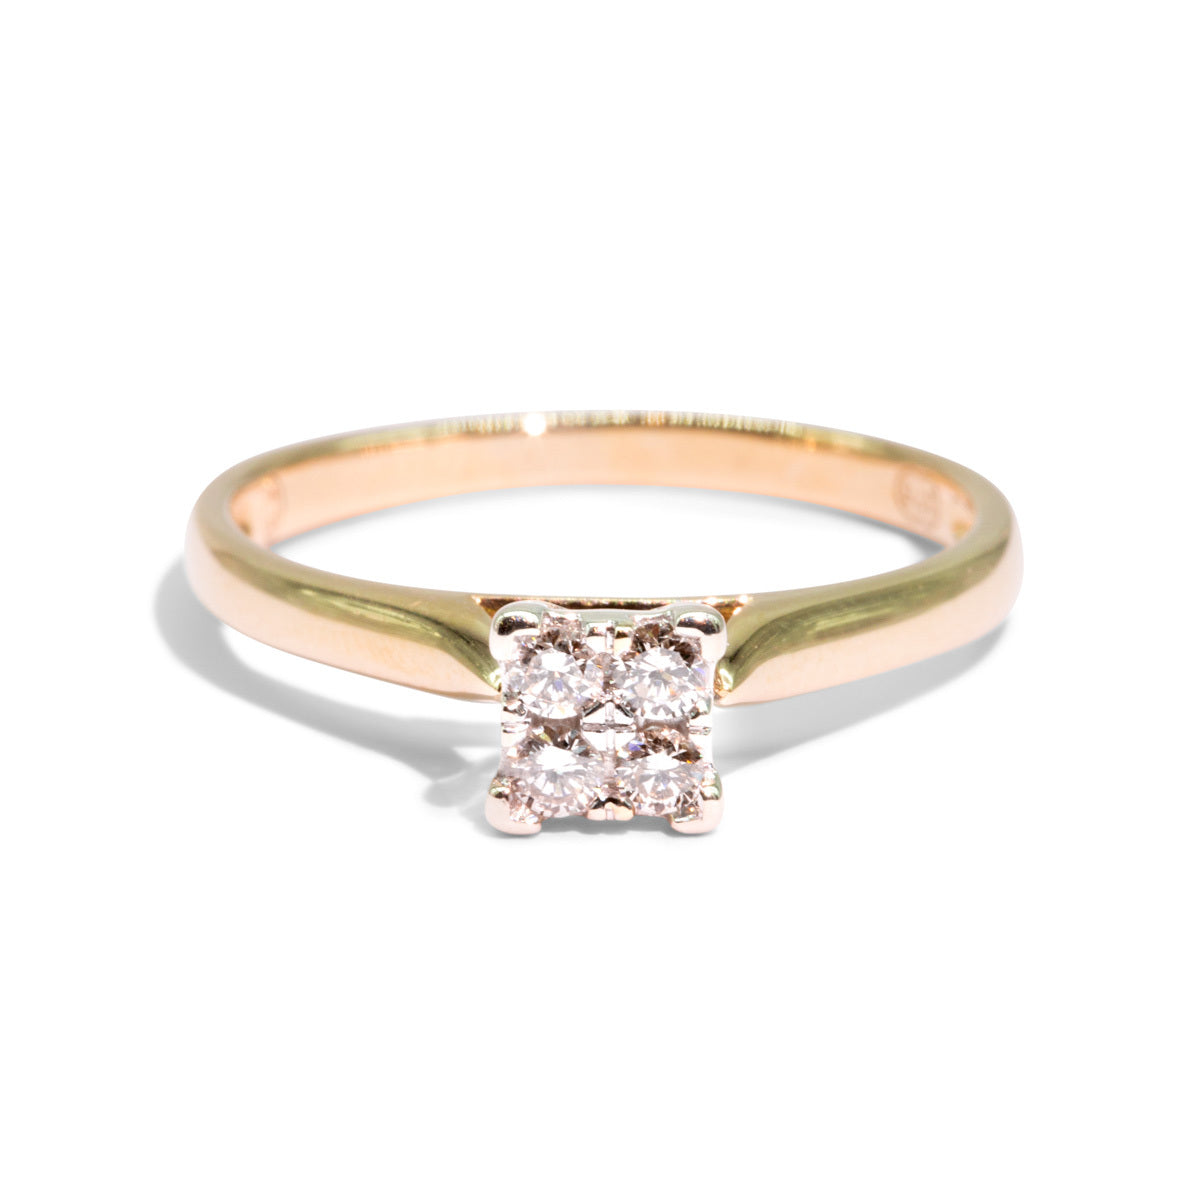 The Vlada Vintage Diamond Ring